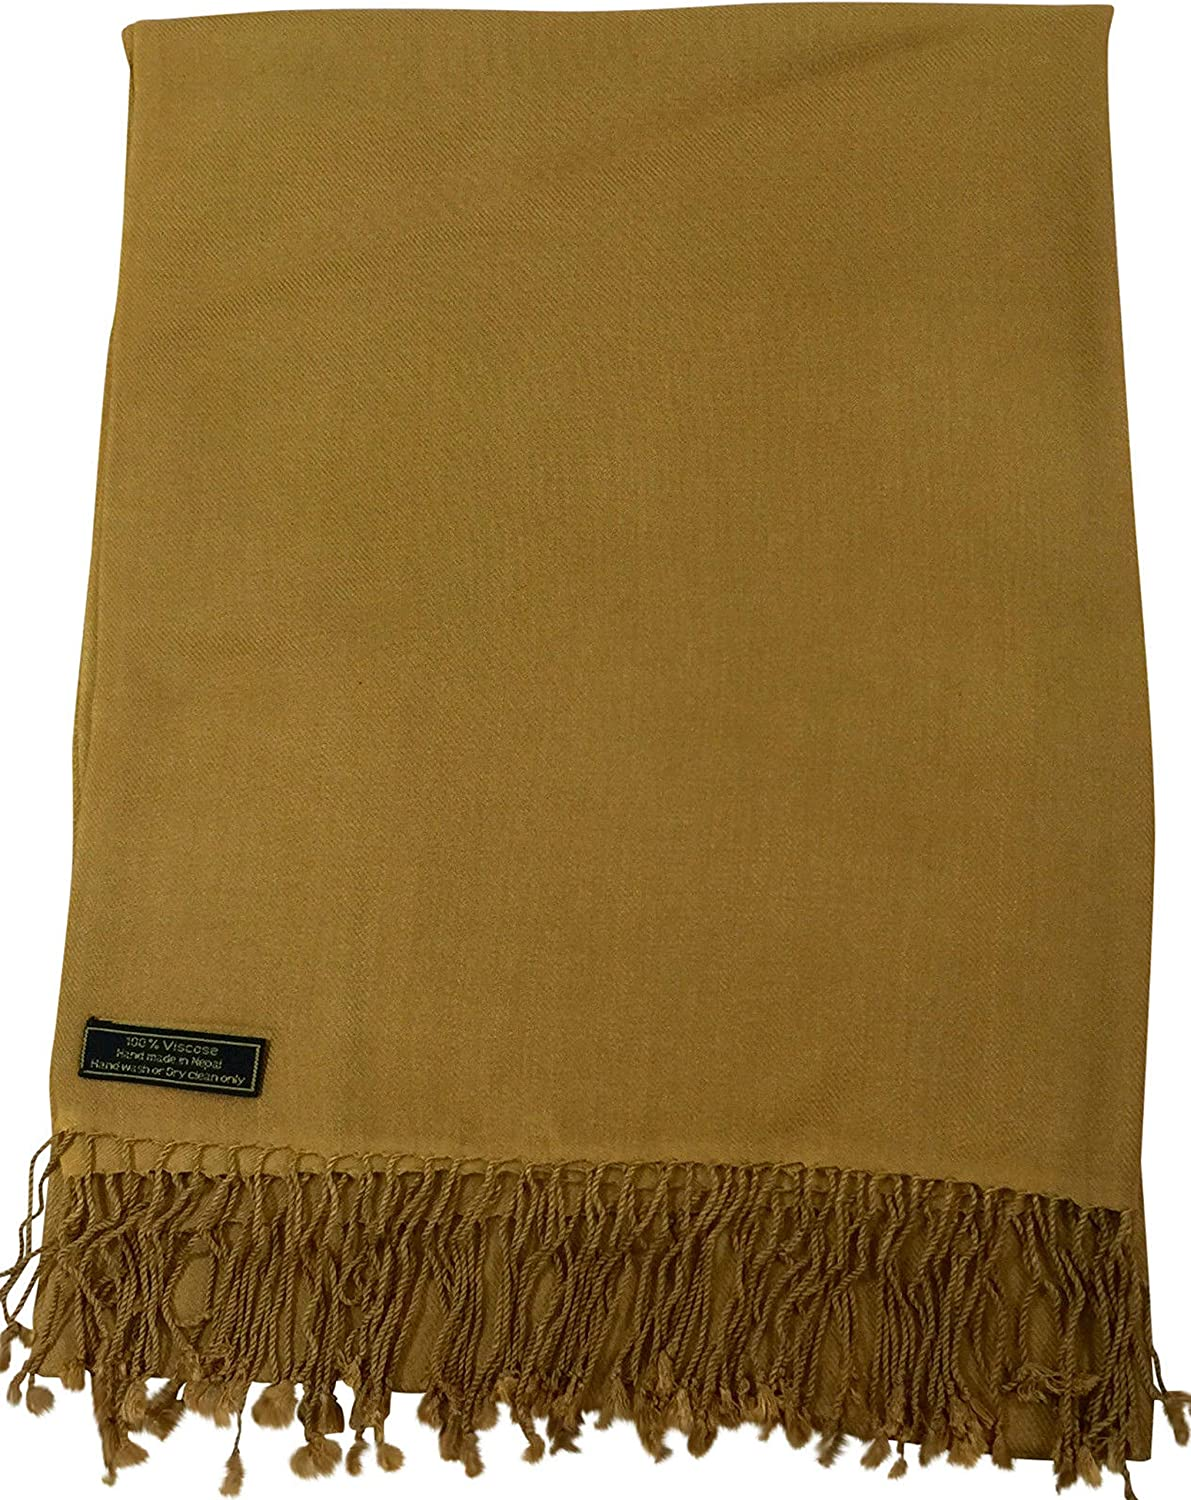 Camel Brown Solid color Design Shawl Pashmina Scarf Wrap Stole CJ Apparel NEW